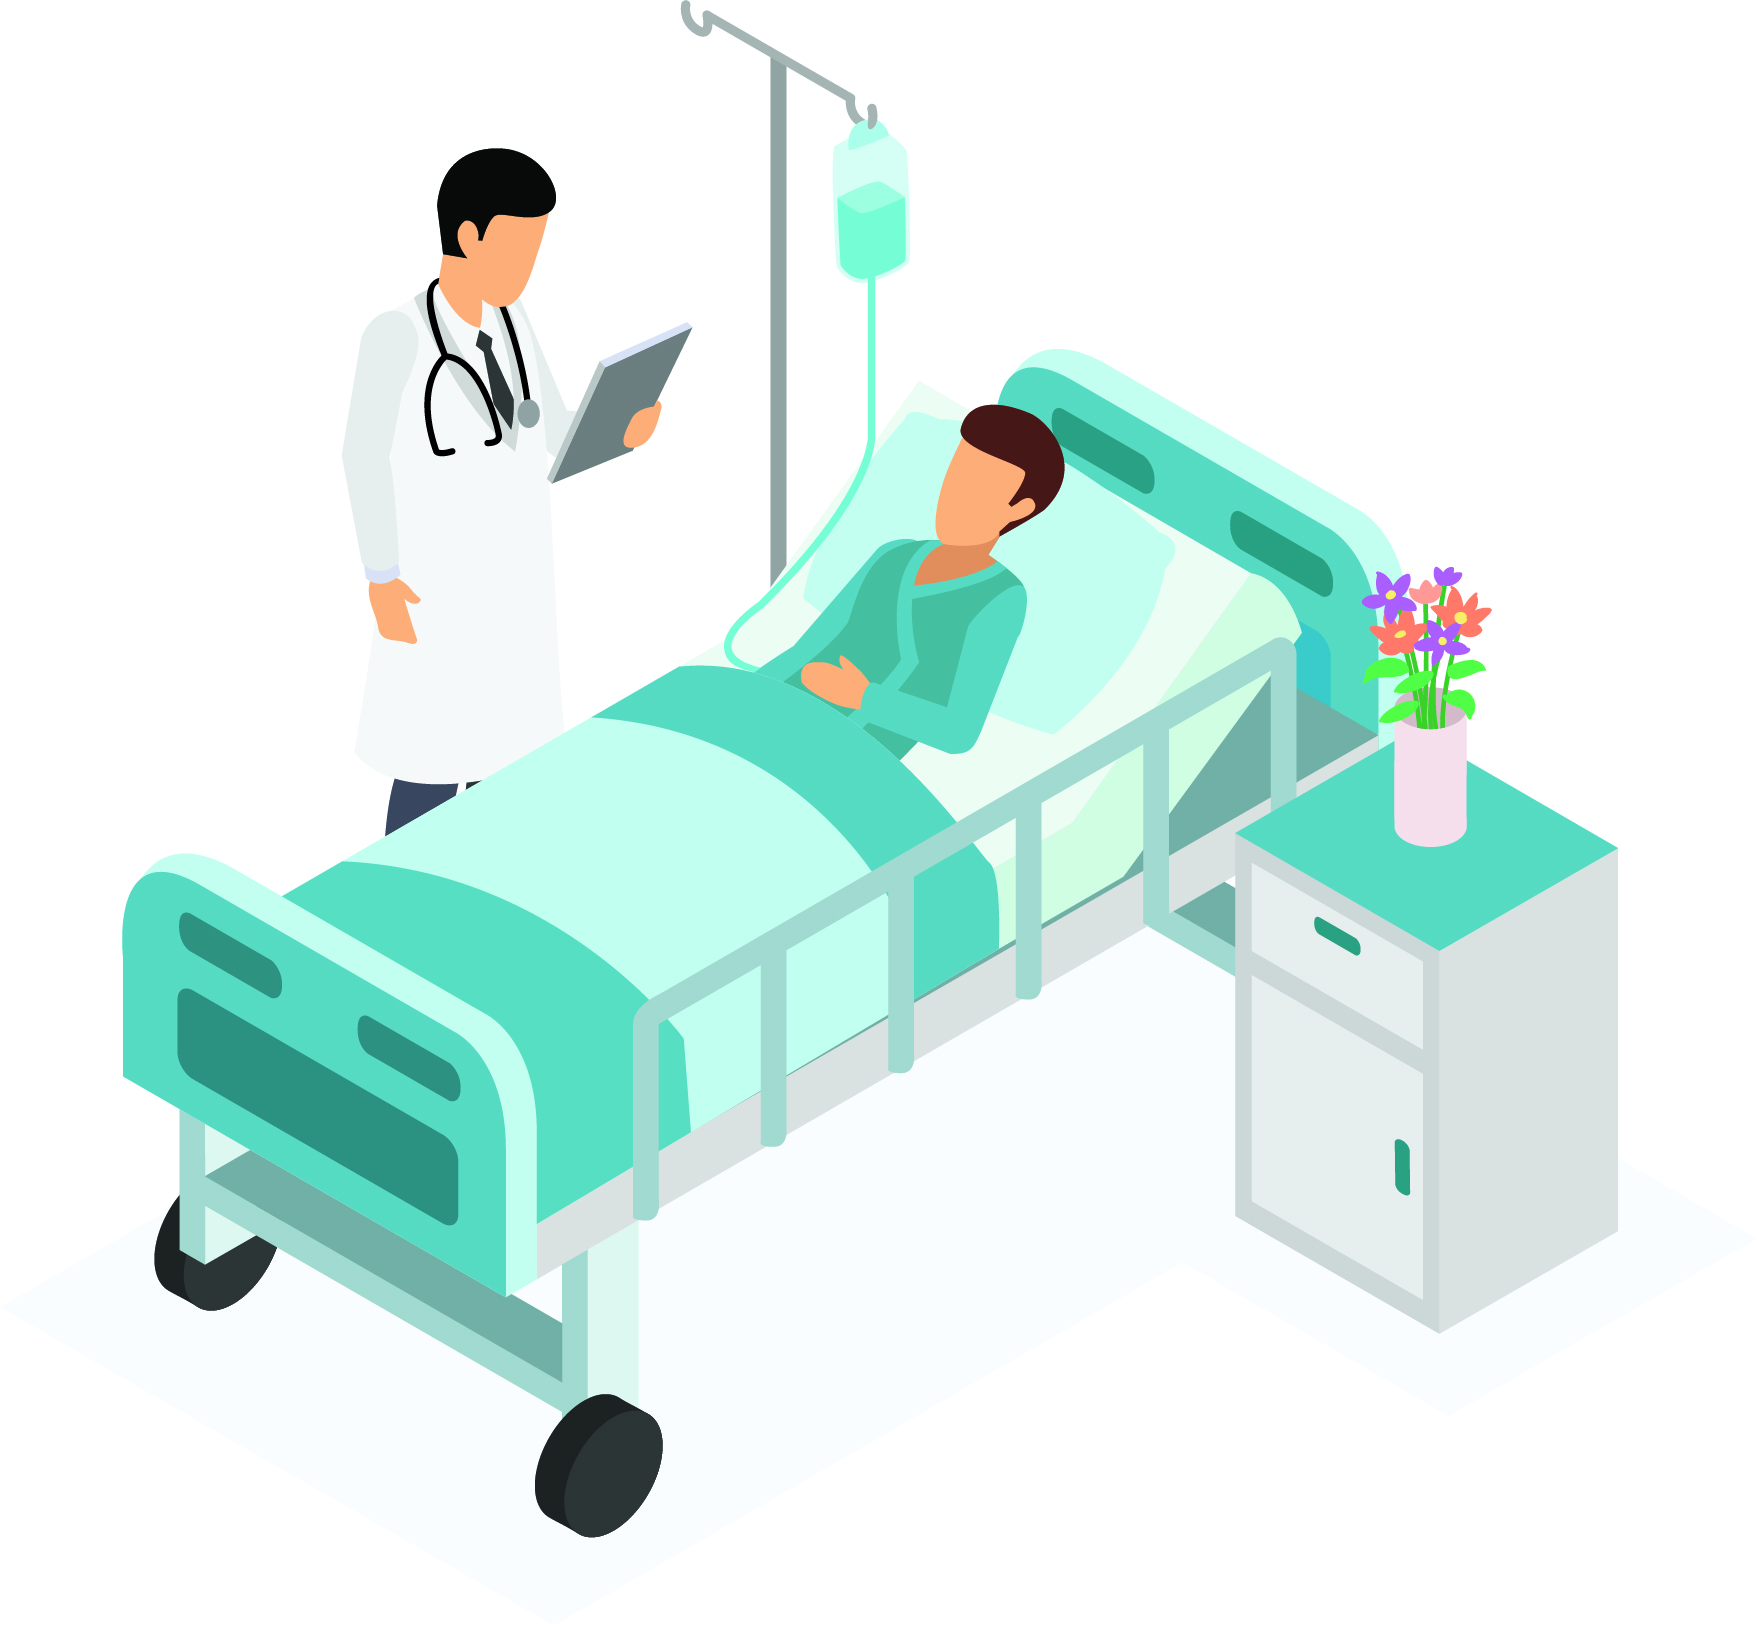 Grahic of doctor standing by a patient's bedside